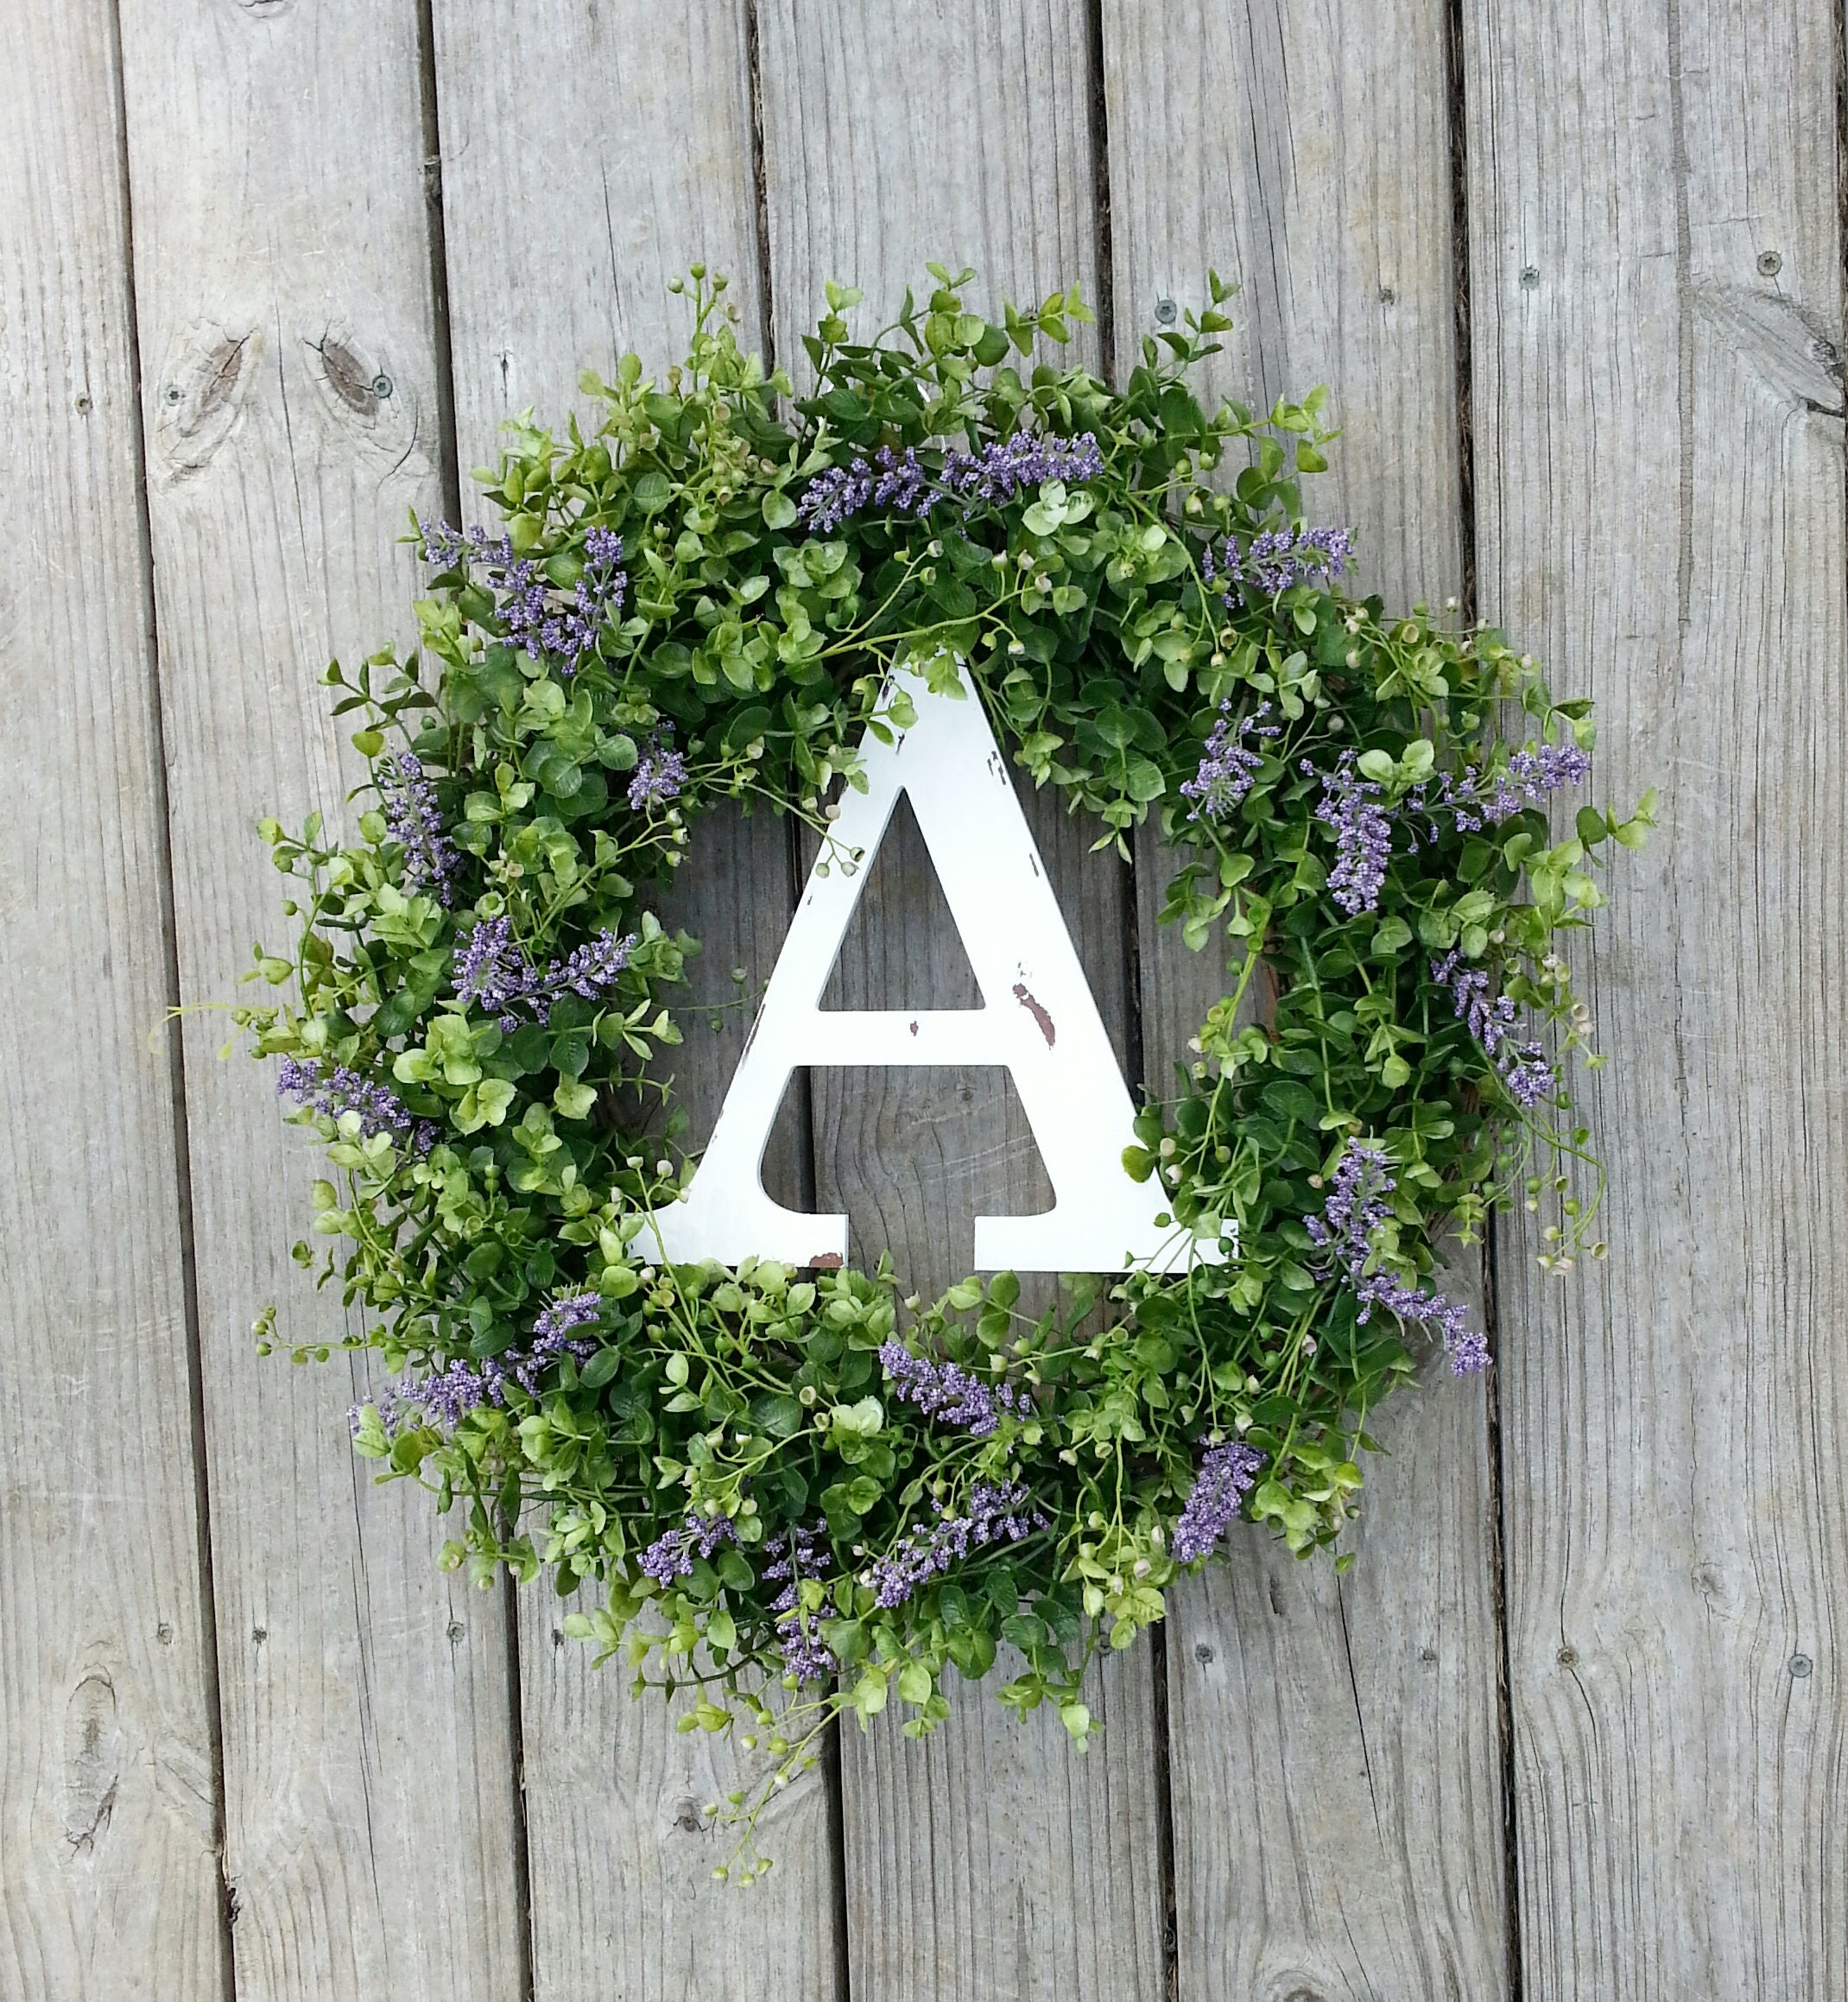 Boxwood Wreath, Monogram Wreath, Fall Wreath, Door Wreath, Wildflower Wreath, Year Round Wreath, Spring Summer Wreath, Rustic Wreath.